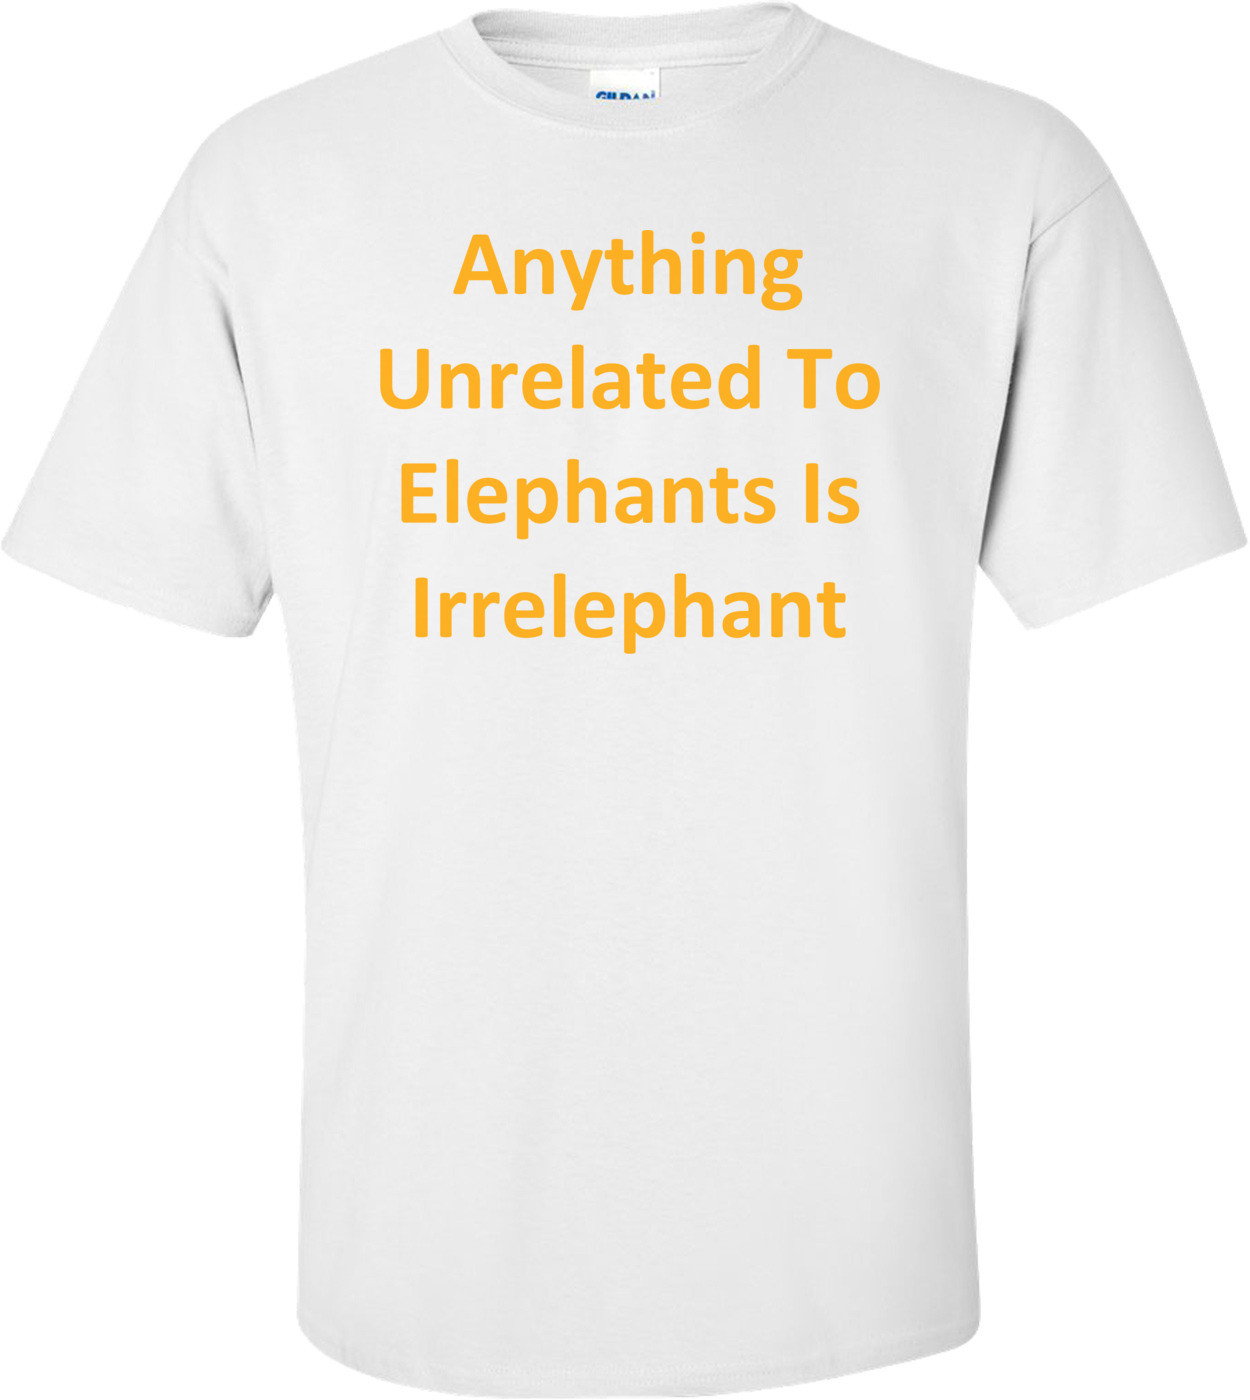 Anything Unrelated To Elephants Is Irrelephant T-Shirt